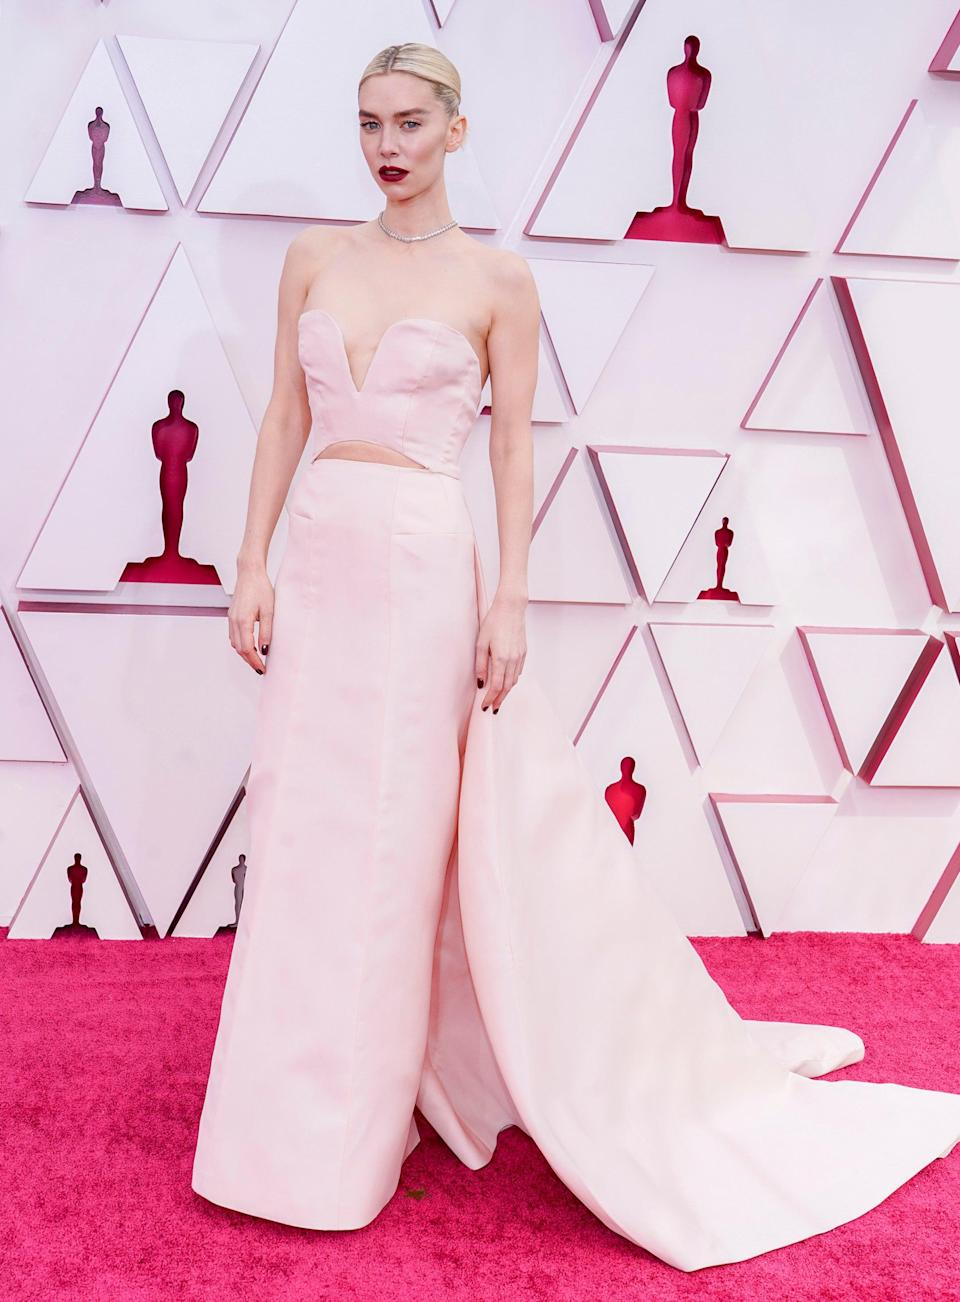 Kirby at the Oscars earlier this year (Getty Images)